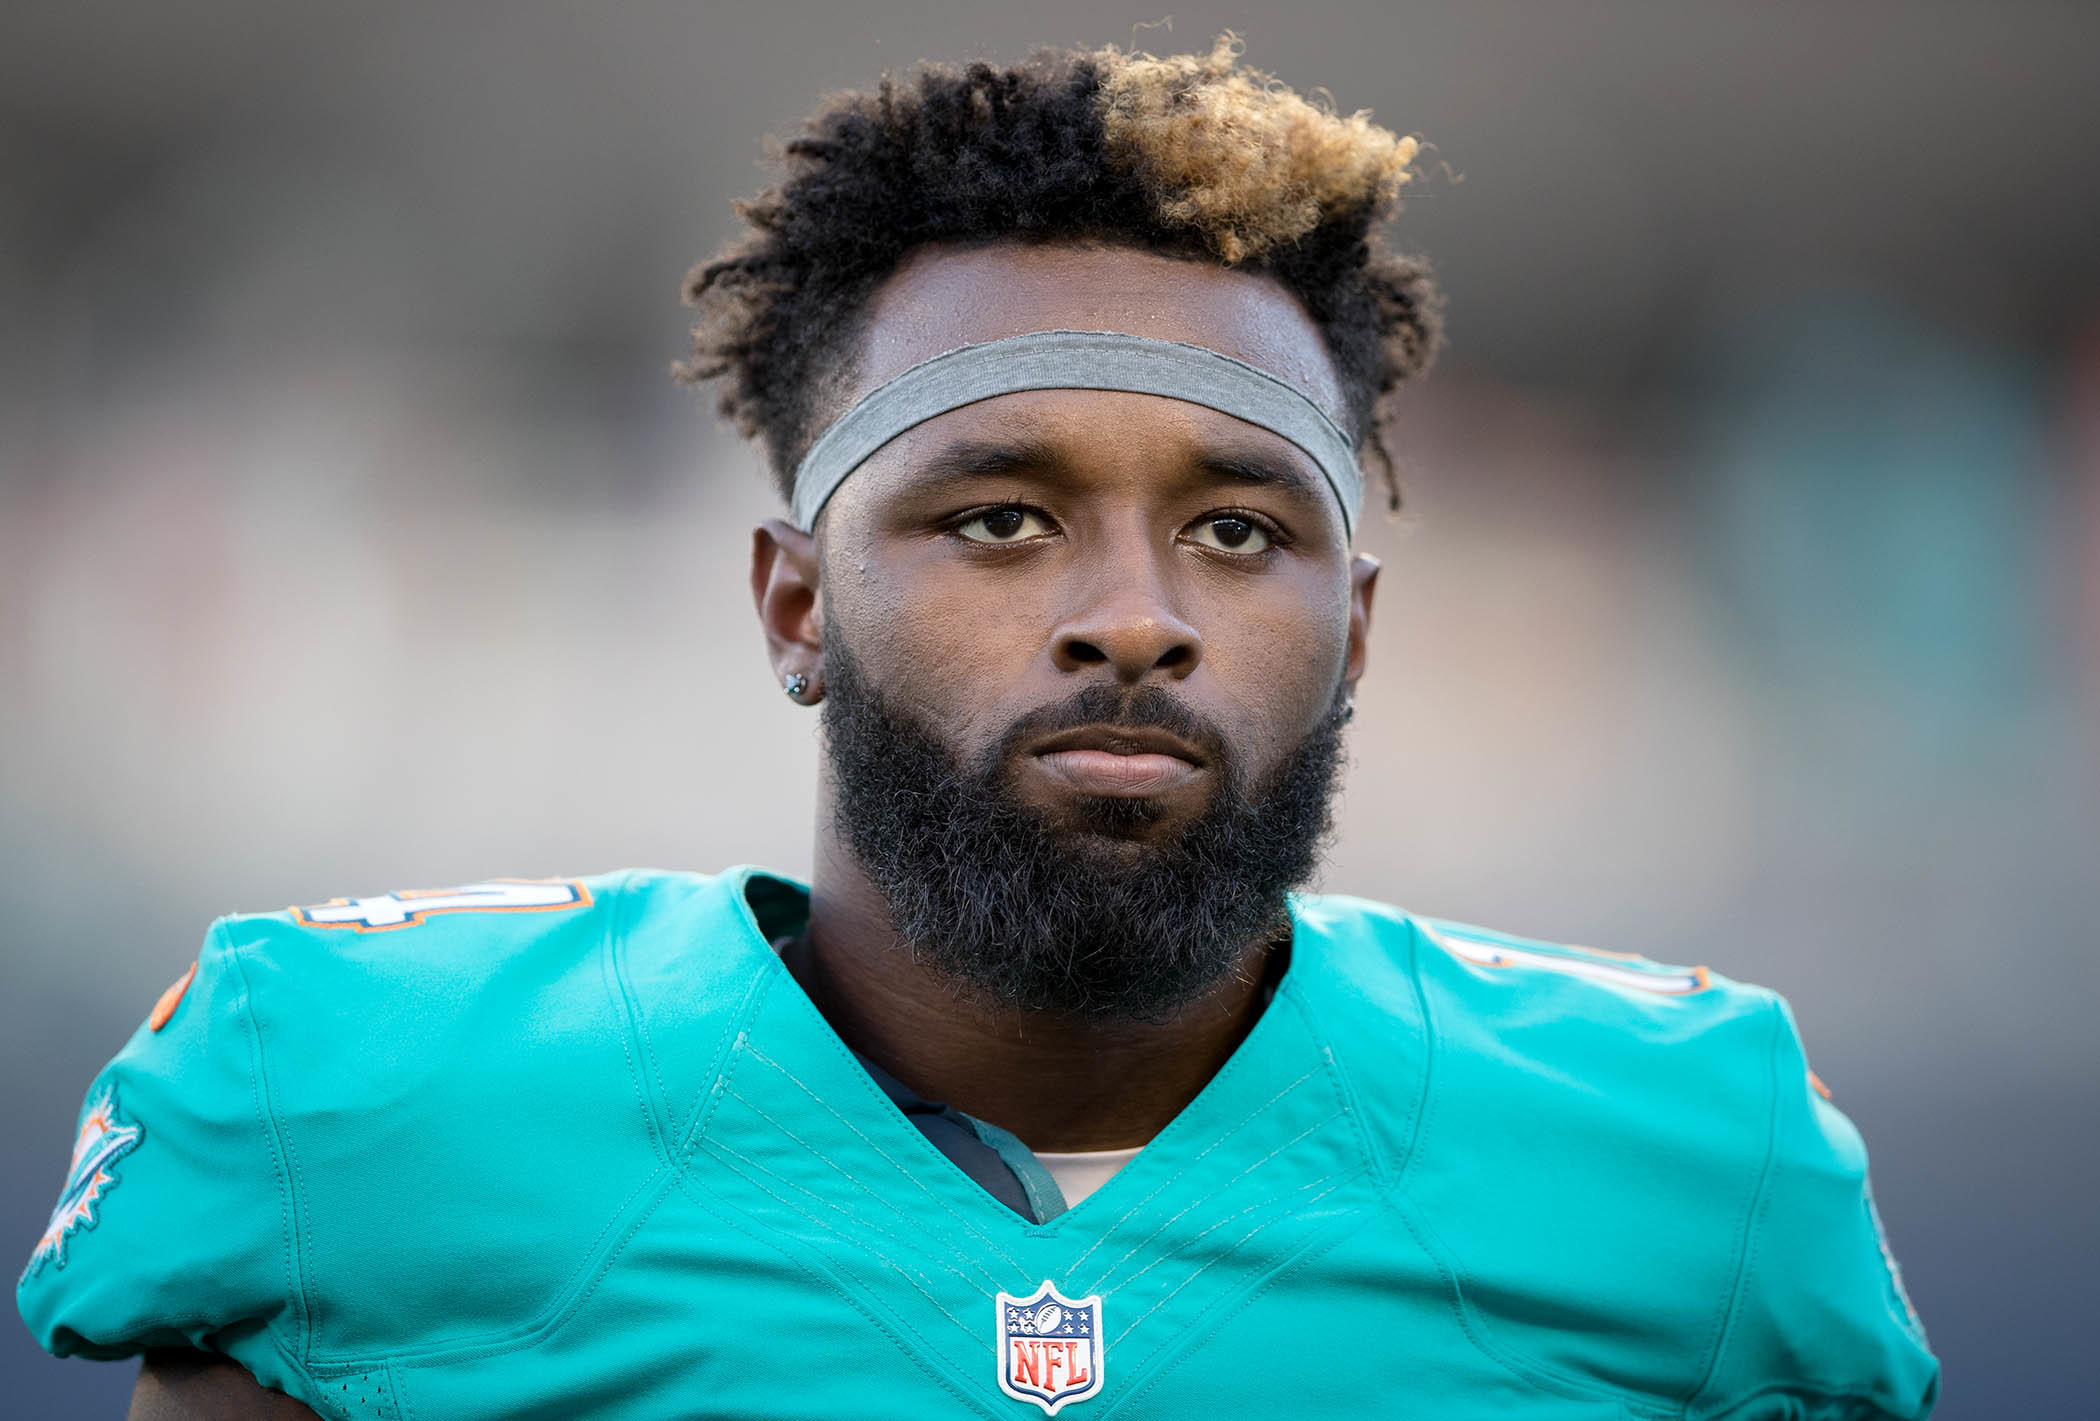 Miami Dolphins wide receiver Jarvis Landry (14) at Camping World Stadium in  Orlando,